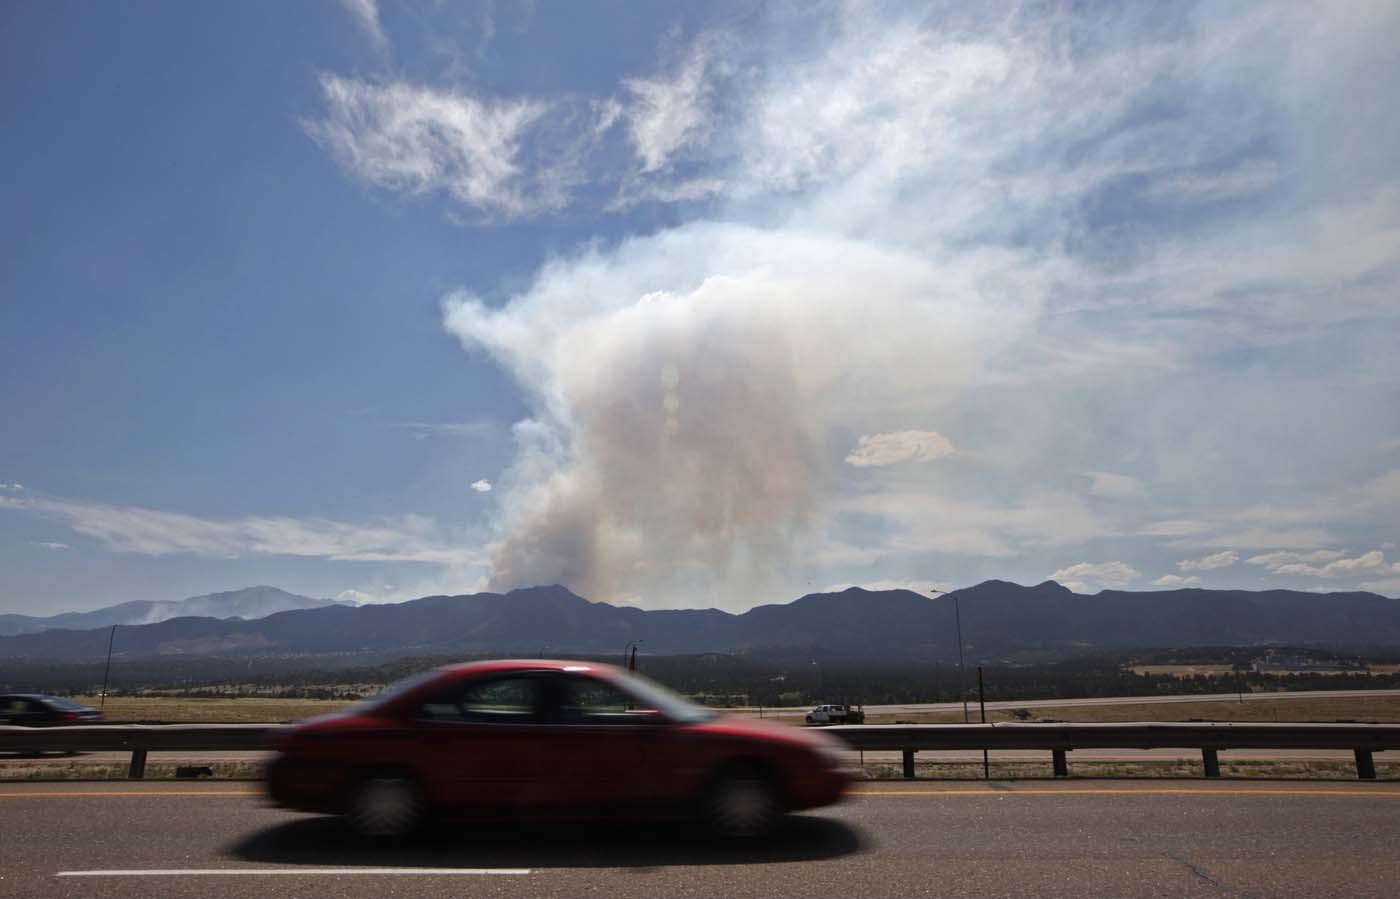 JUNE 25: A car speeds down the highway past the Waldo Canyon fire sending up a smoke plume, which could be seen for miles, outside Colorado Springs, Colorado June 25, 2012. The out-of-control wildfire near some of Colorado's most visited tourist sites expanded overnight and kept some 6,000 people from their homes on Monday, as forecasts said winds could push the flames toward the U.S. Air Force Academy. (Rick Wilking/Reuters)